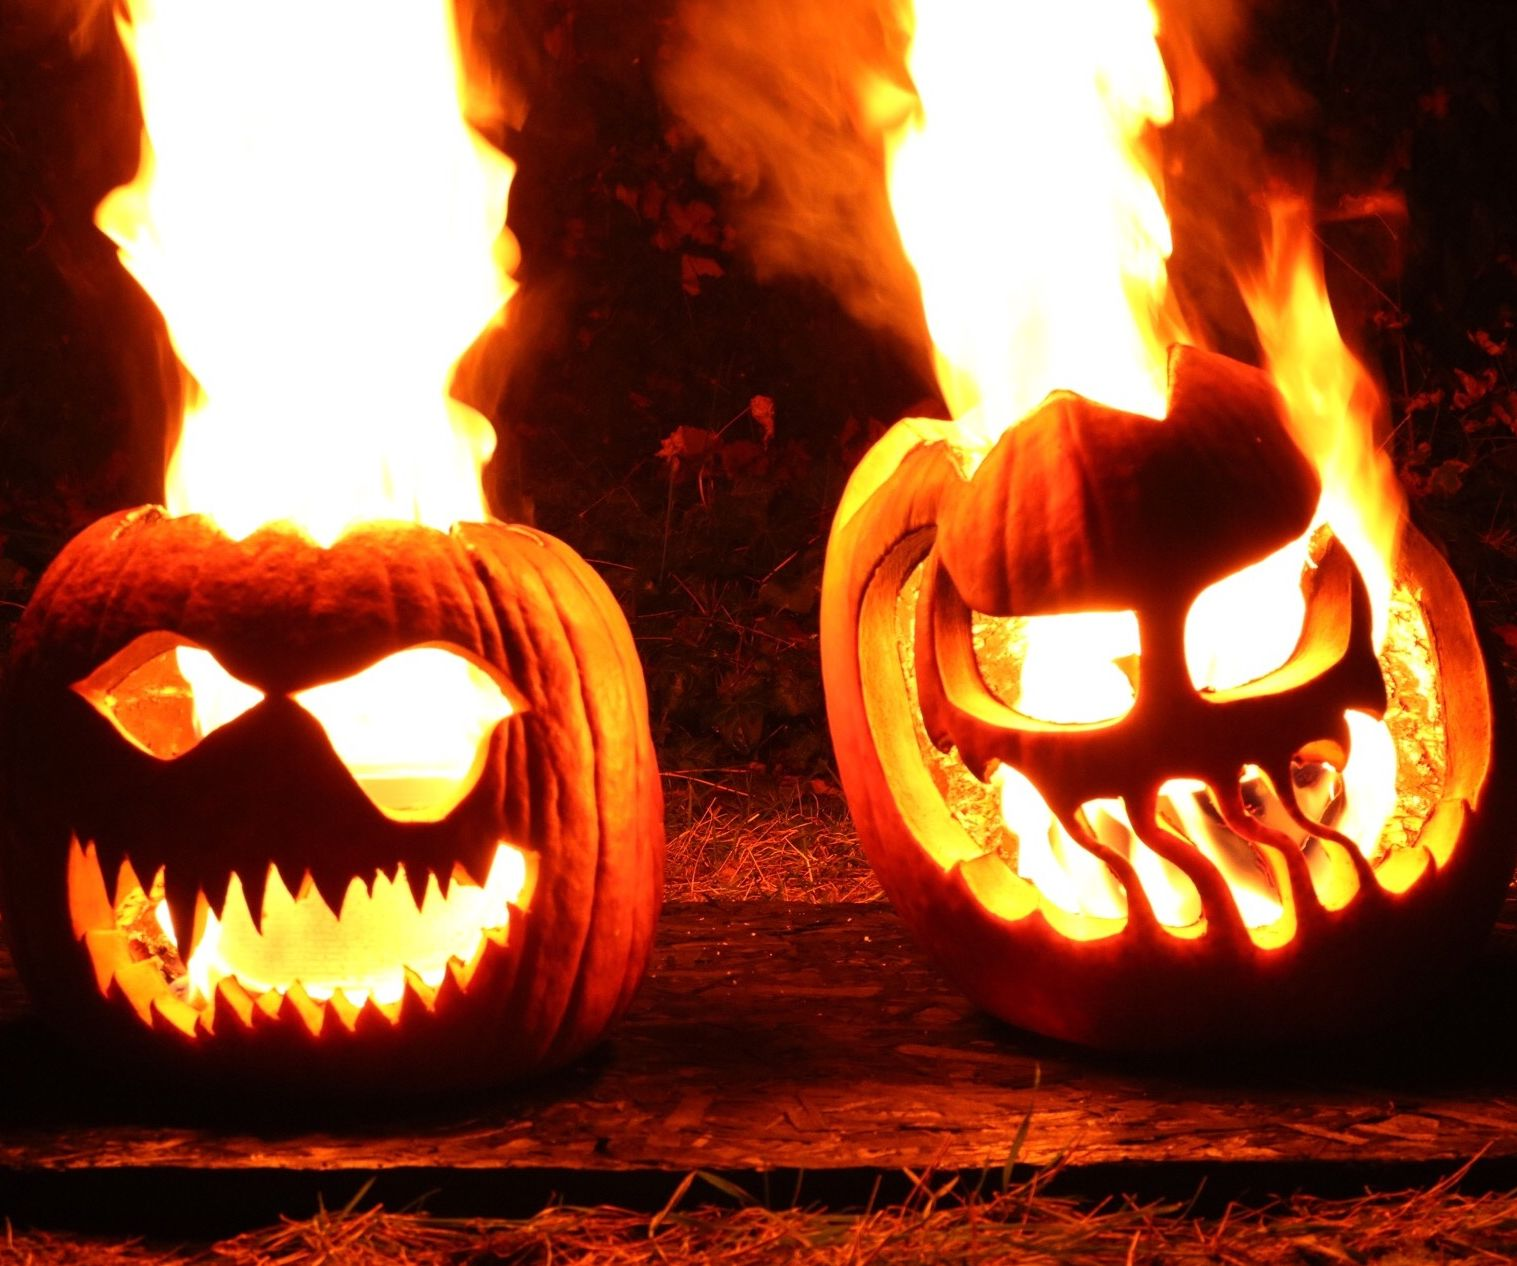 Flaming Halloween Jack-o'-lanterns